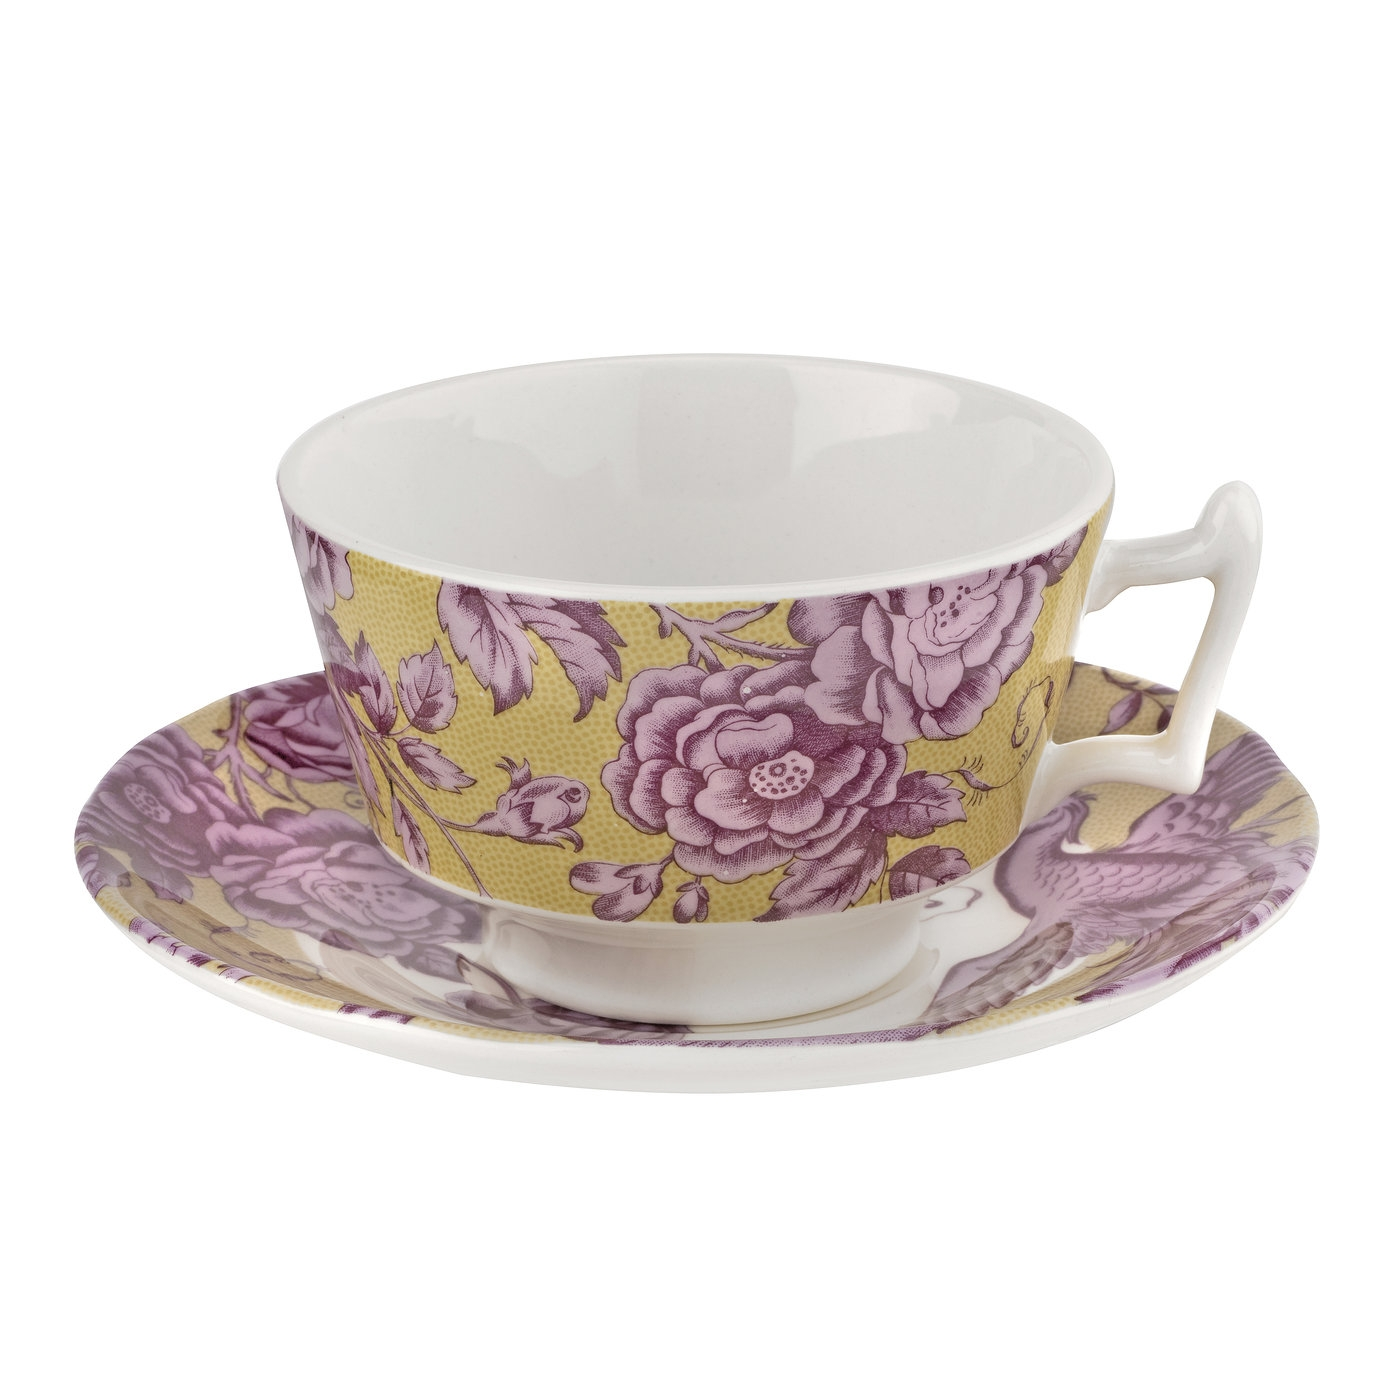 Spode Kingsley Ochre 7 oz Teacup  image number 0